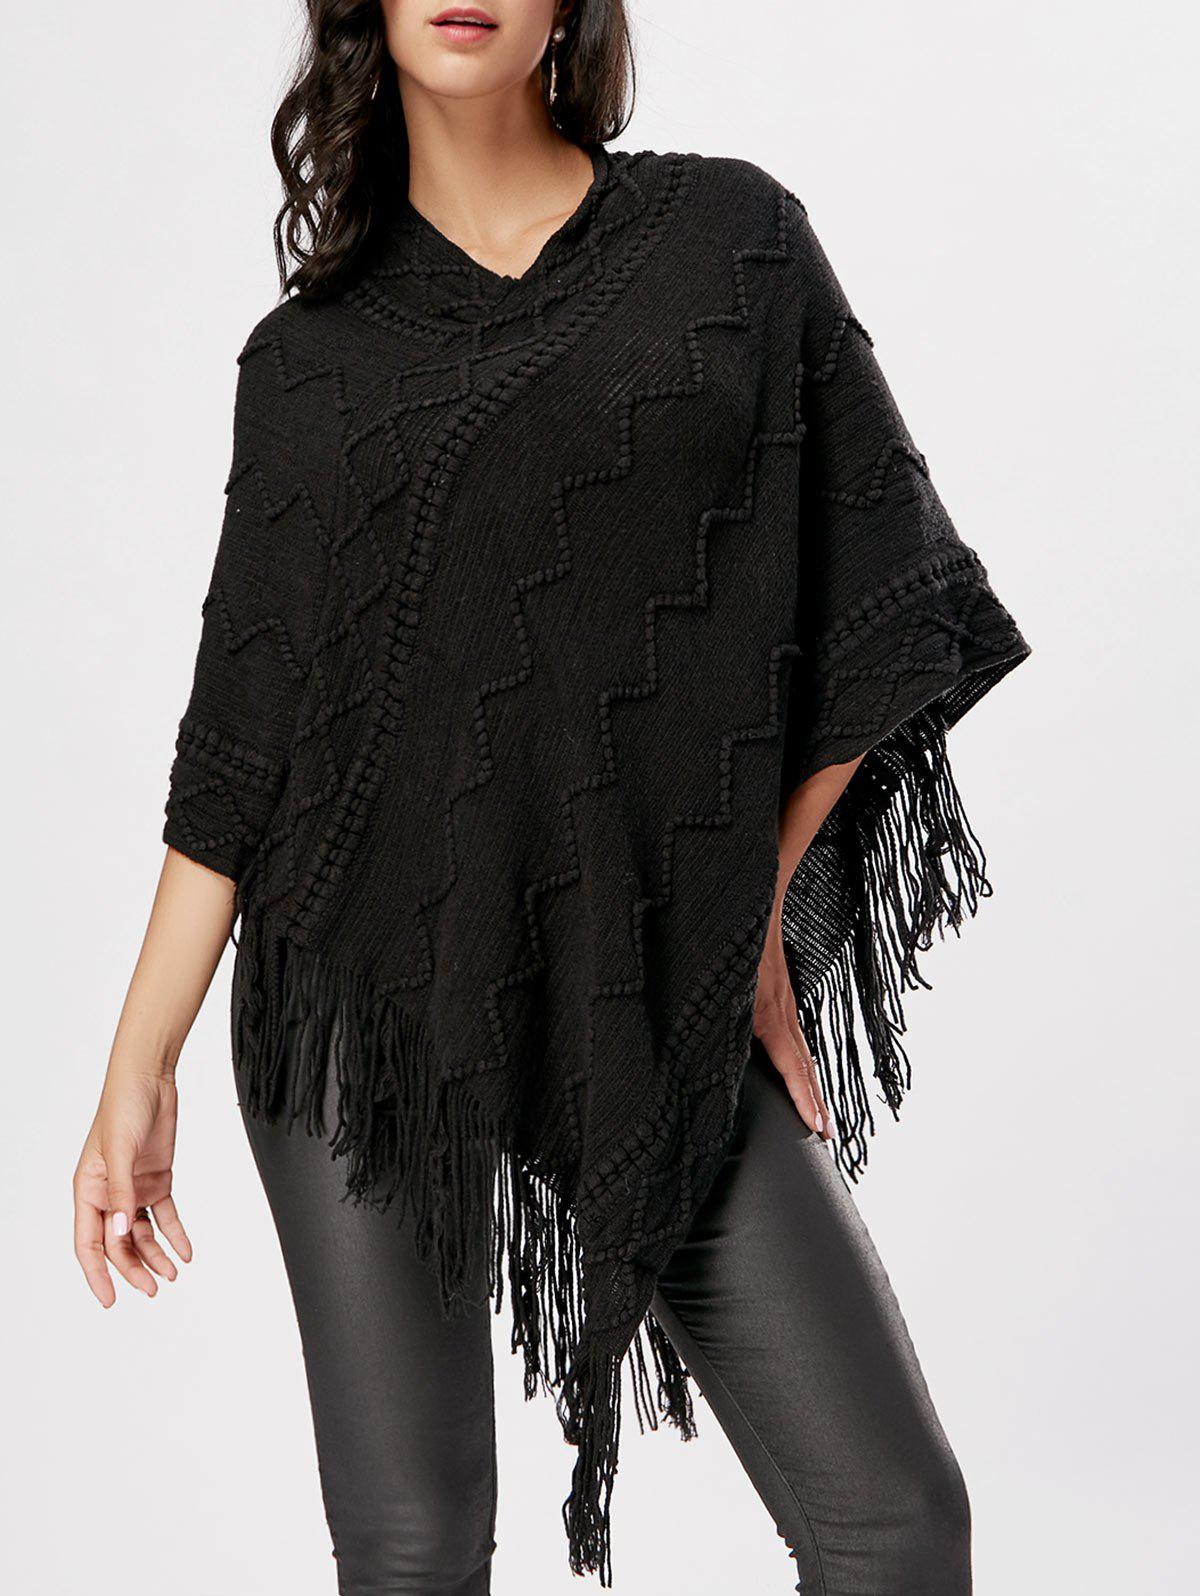 V Neck Fringe Knitted Cape - BLACK L